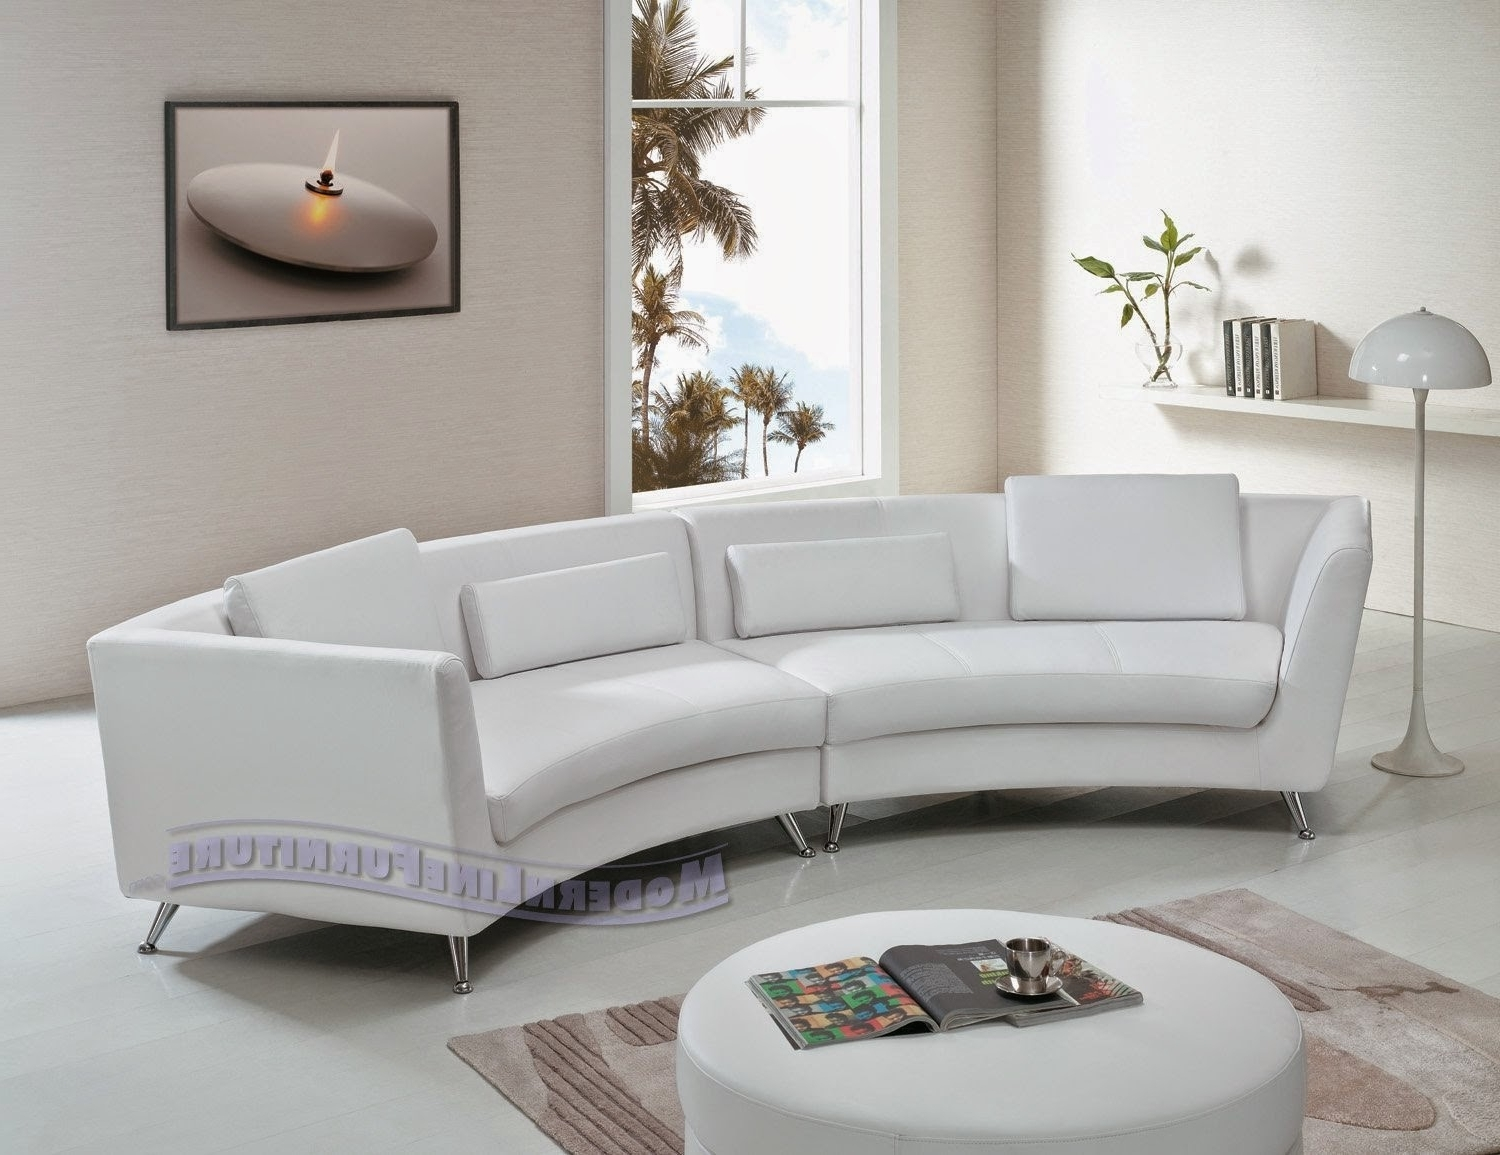 Sofa Curved: Curved Sofa For Bay Window With Preferred The Bay Sectional Sofas (View 16 of 20)